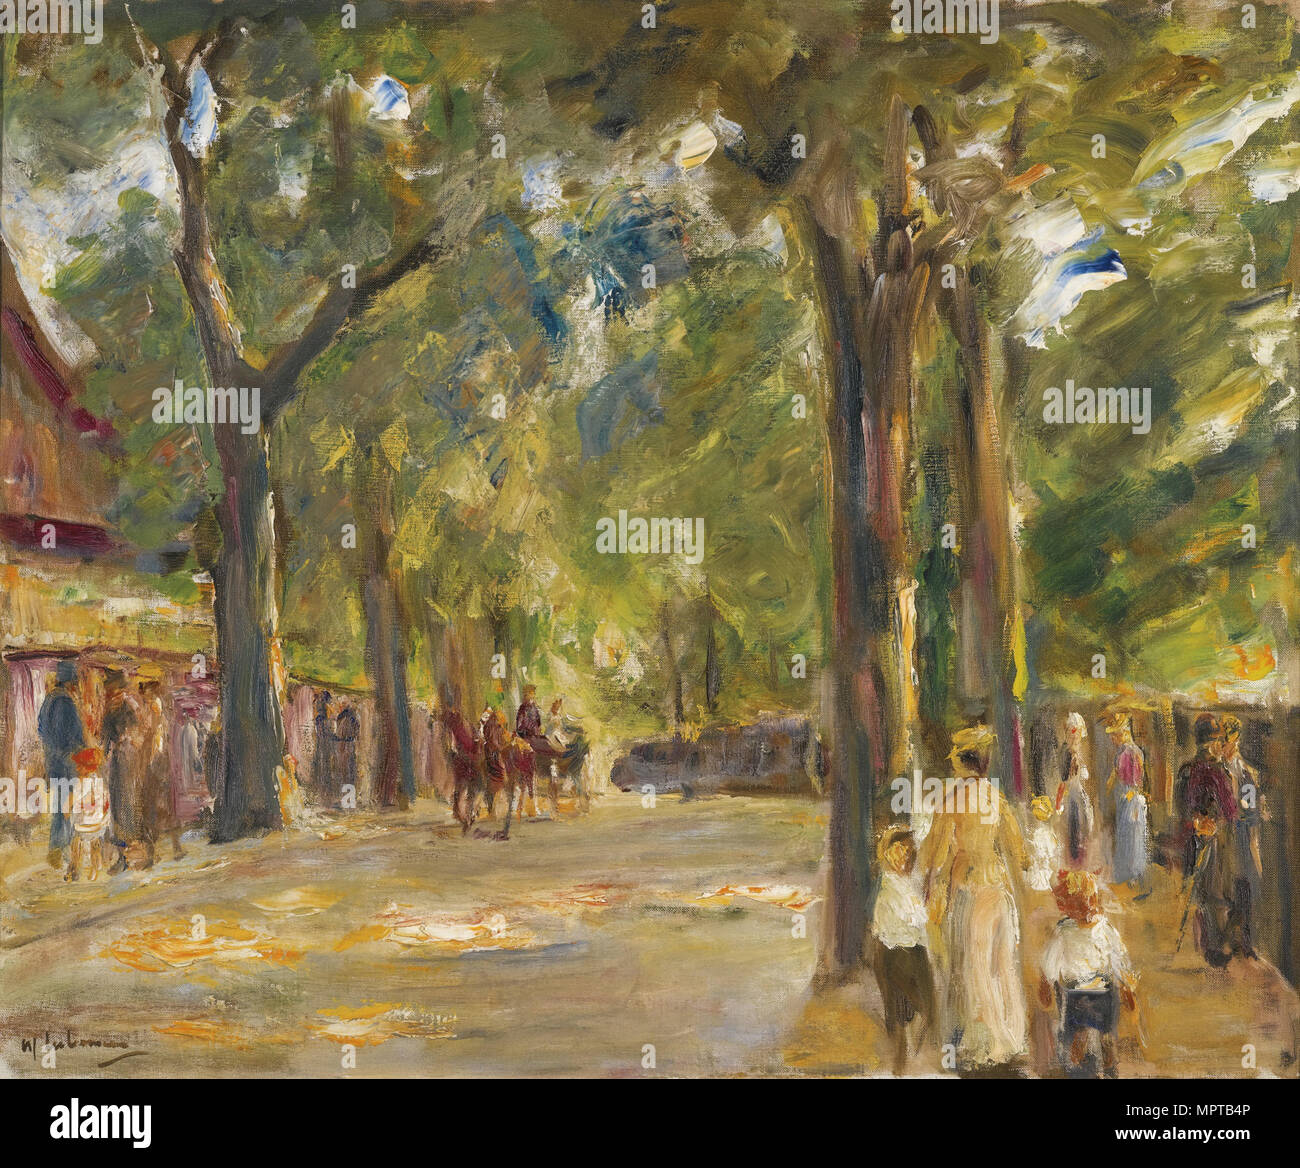 Figures on the Grosse Seestrasse in Wannsee. - Stock Image